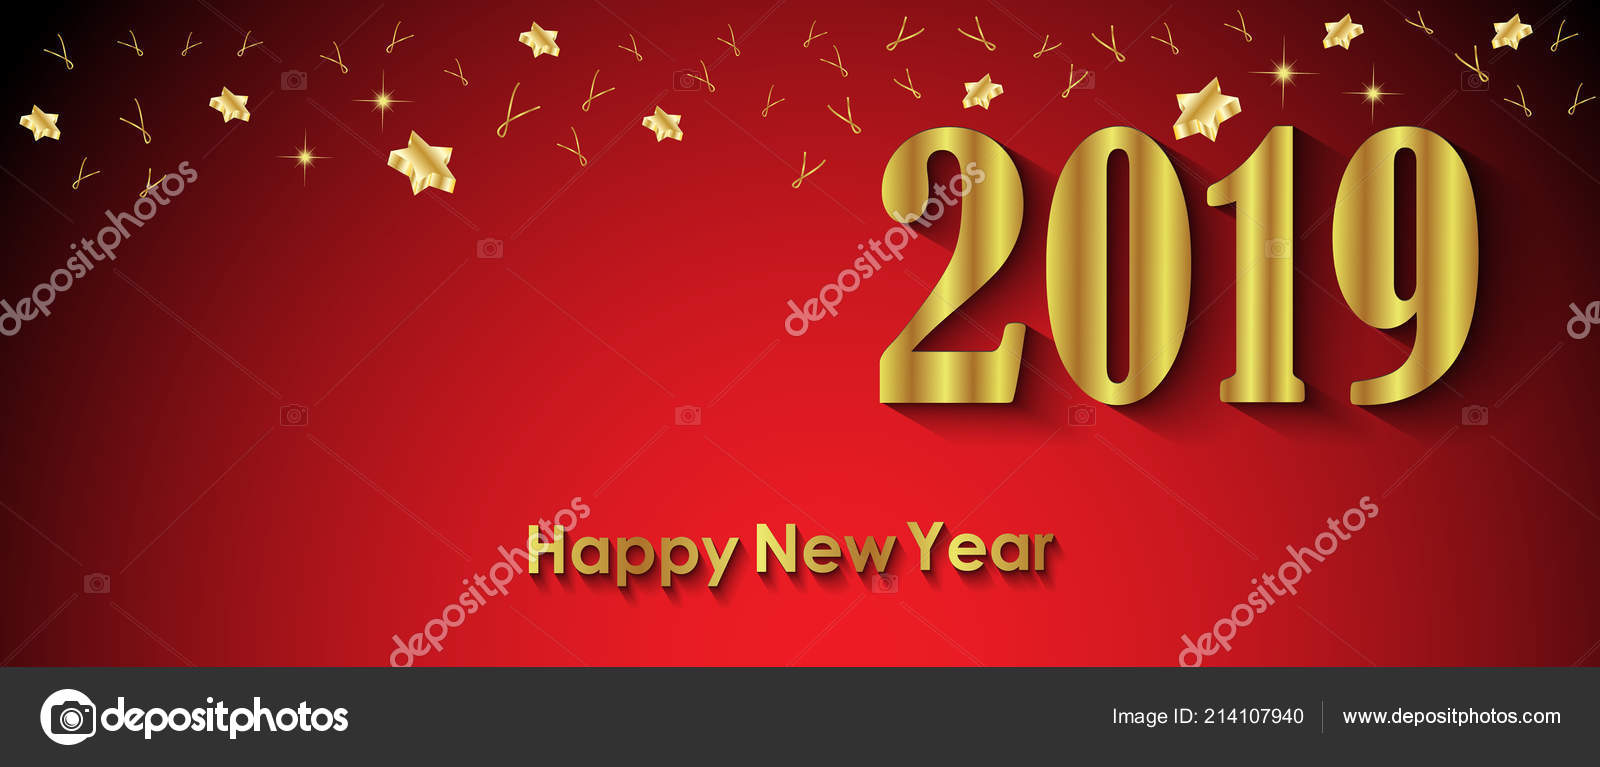 2019 Happy New Year Background Your Invitations Festive Posters